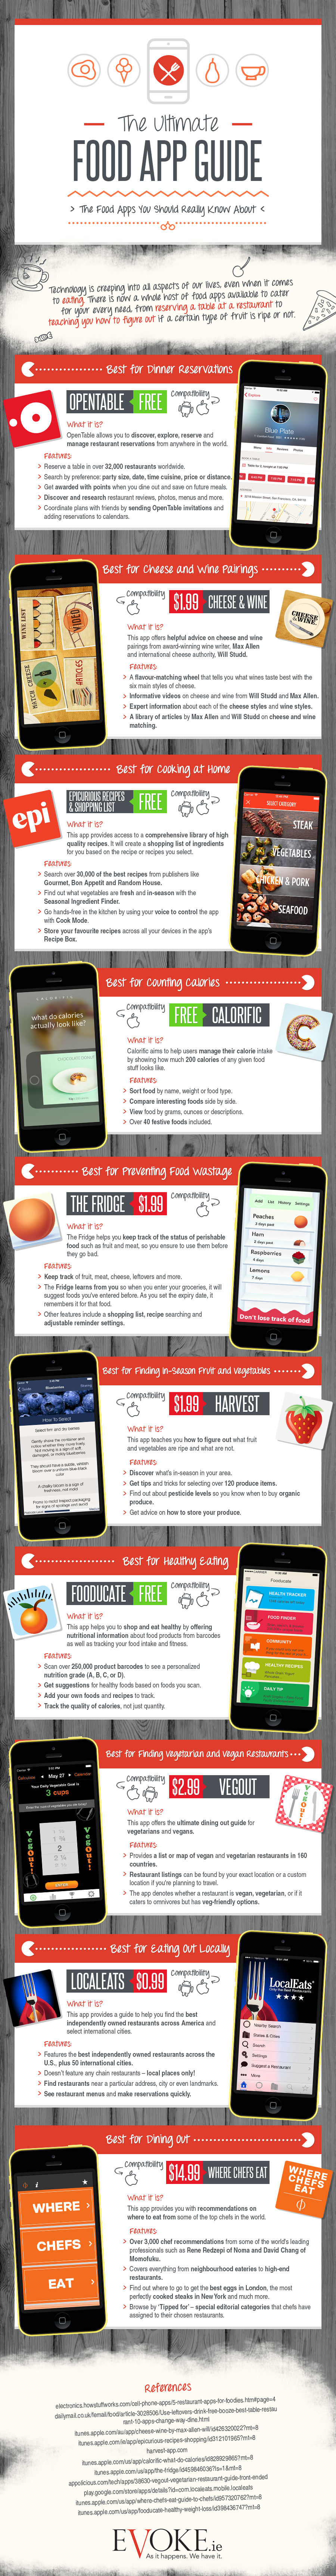 Food-App-Guide-Infographic